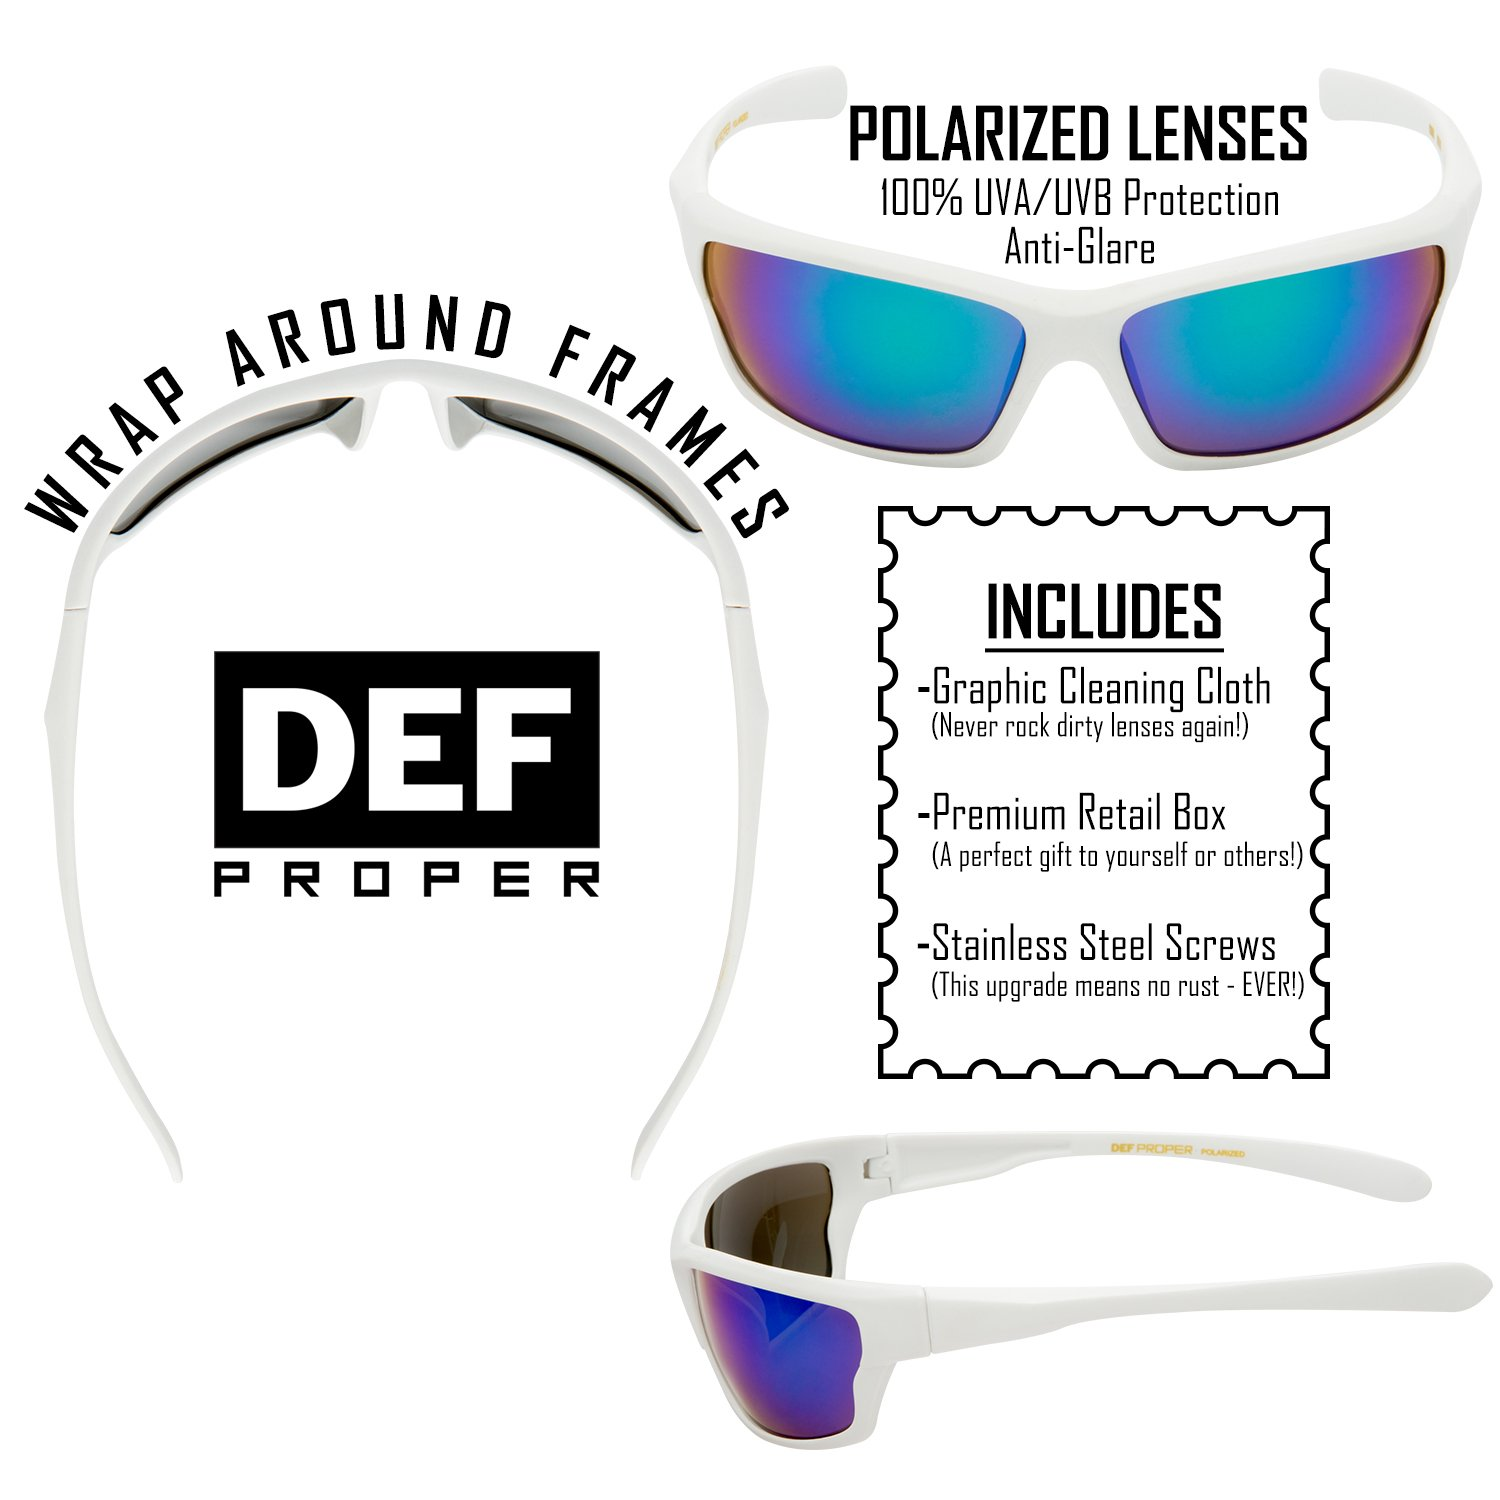 680f66111cc5 DEF Proper Polarized Wrap Around Sports Sunglasses ... polarized sunglasses  define